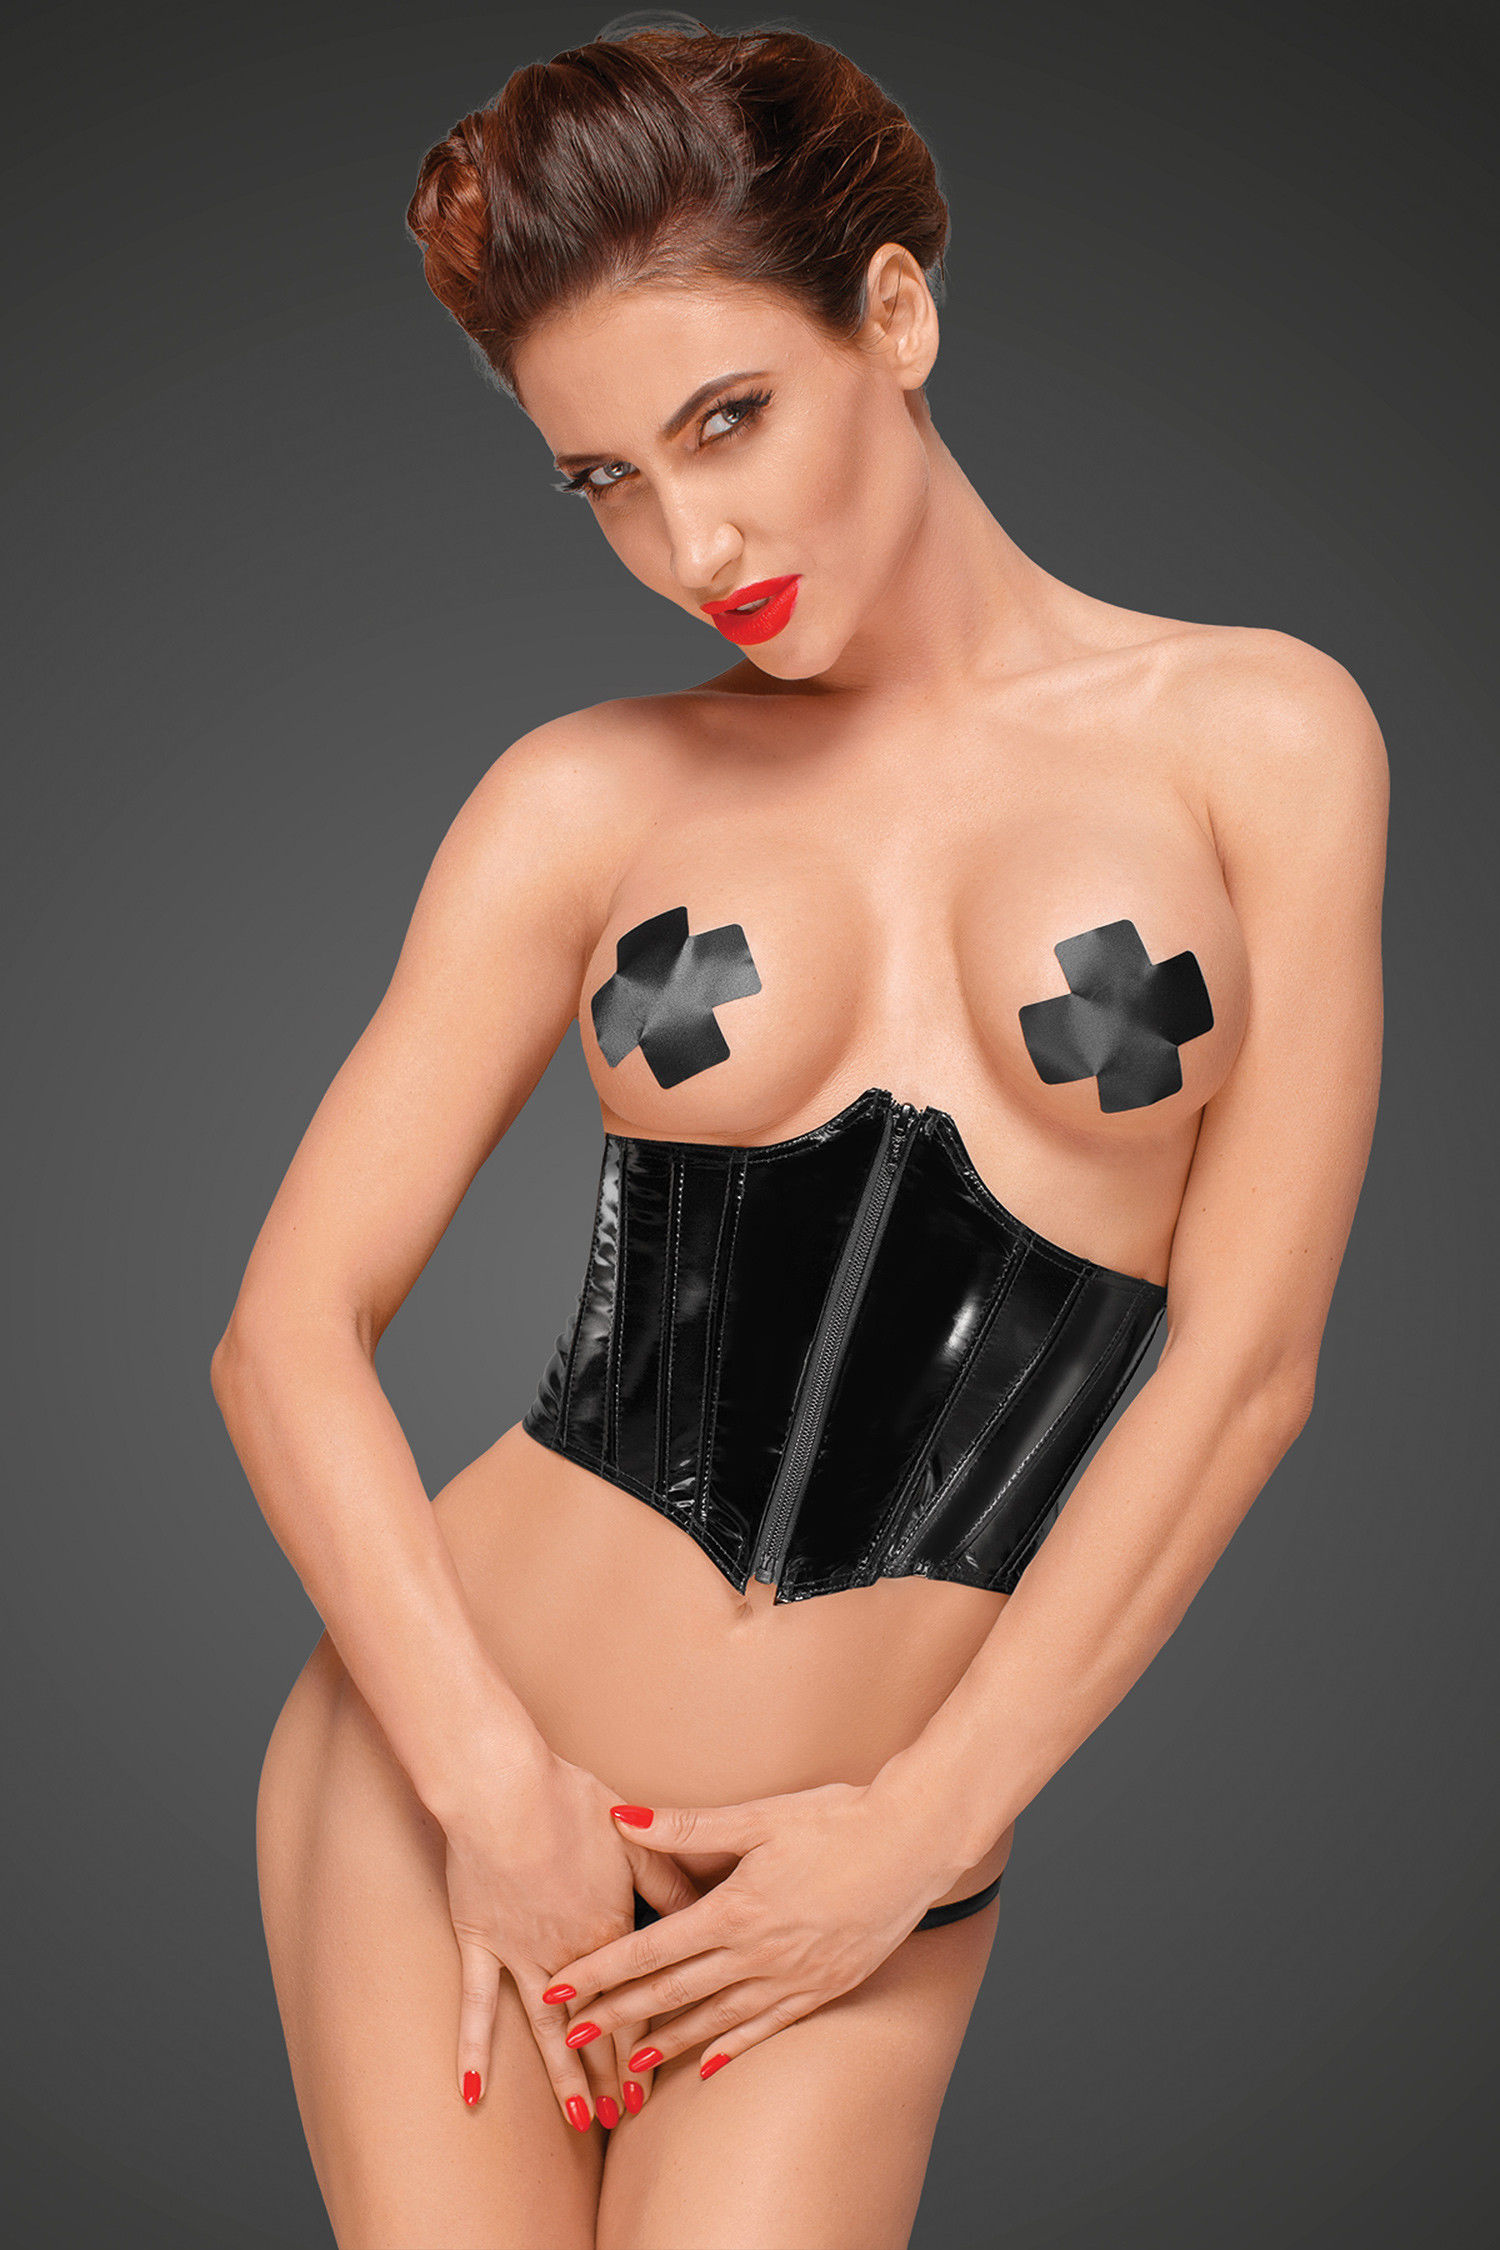 Noir Handmade F193 PVC Corset with Adjustable Lacing on The Back S